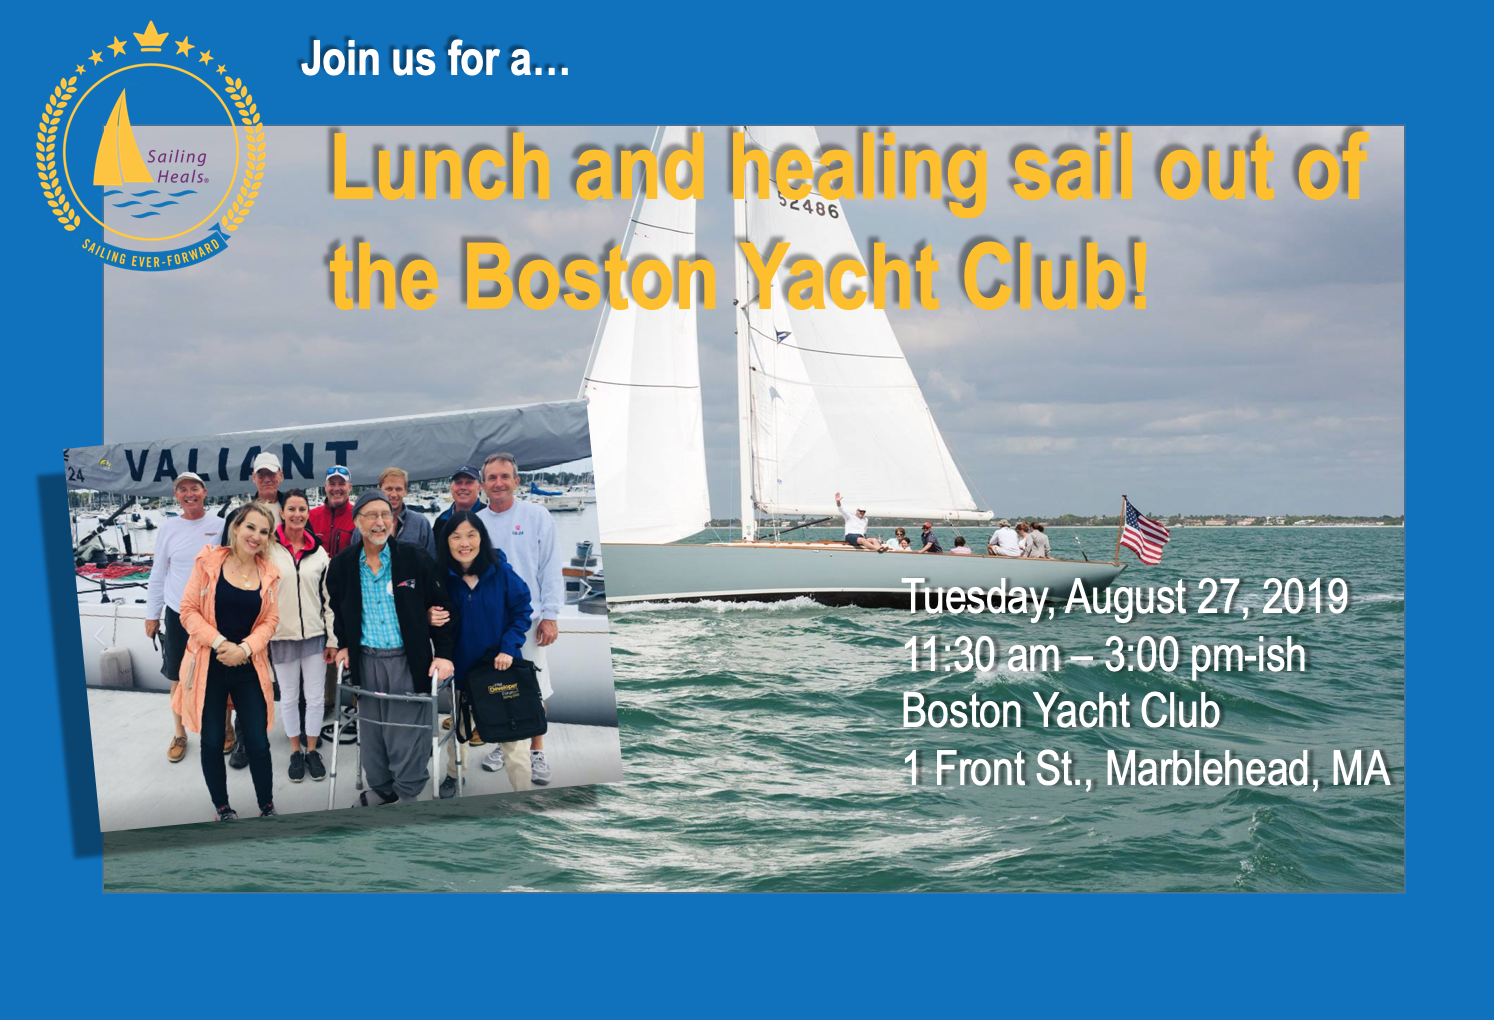 8.27.19 Boston Yacht Club Lunch and Healing Sail